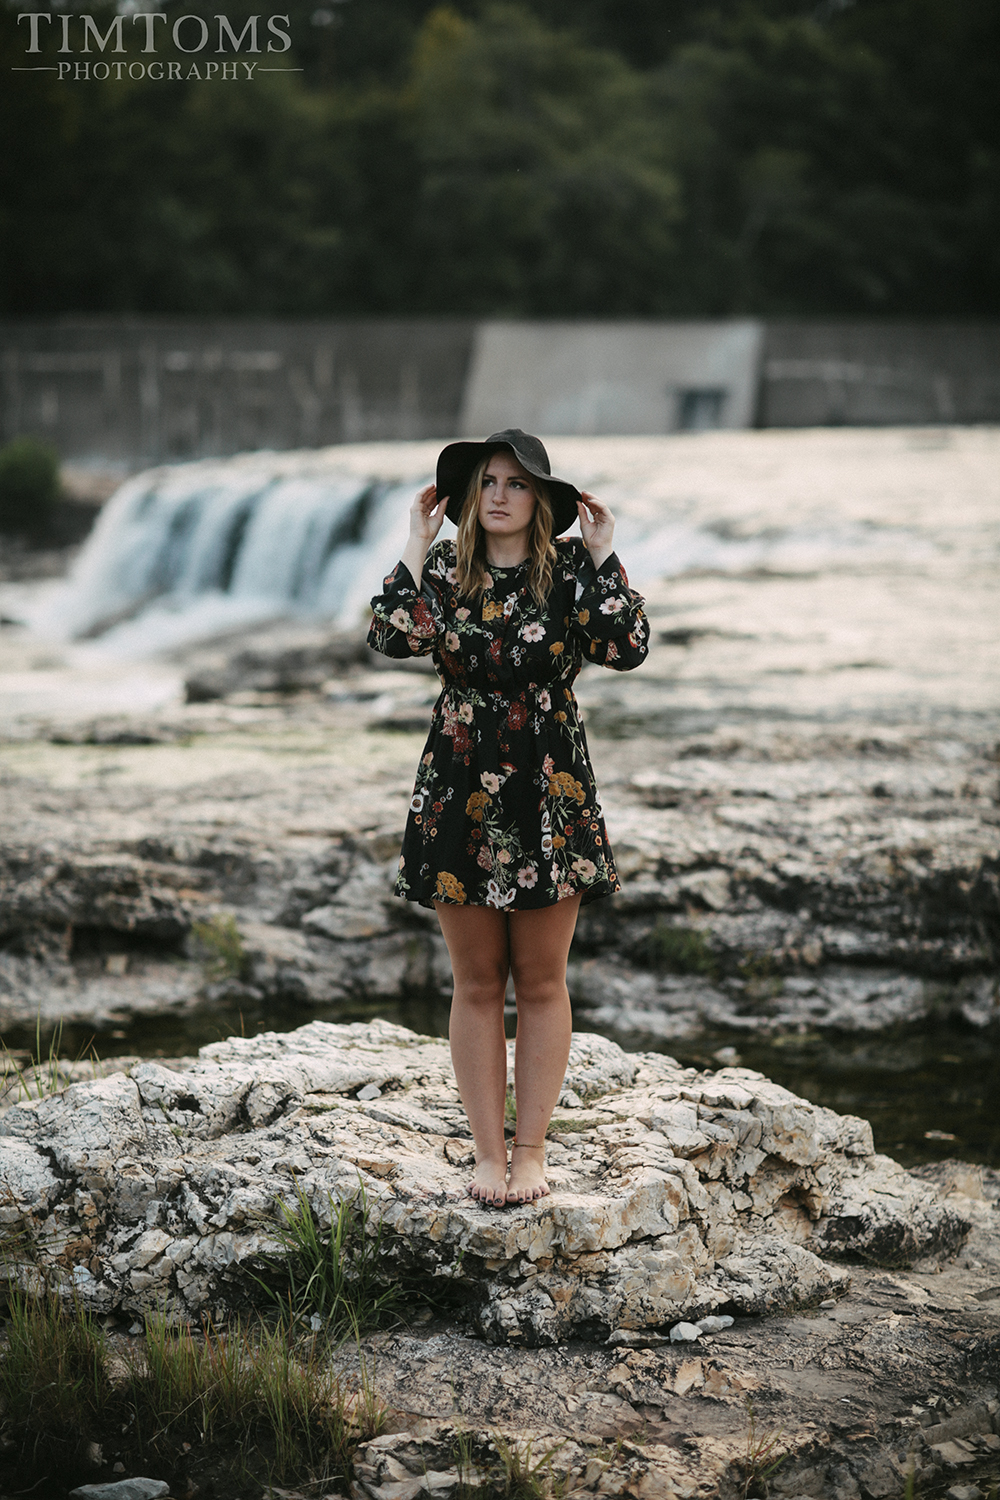 senior picture photographer joplin missouri the falls grand falls floral dress